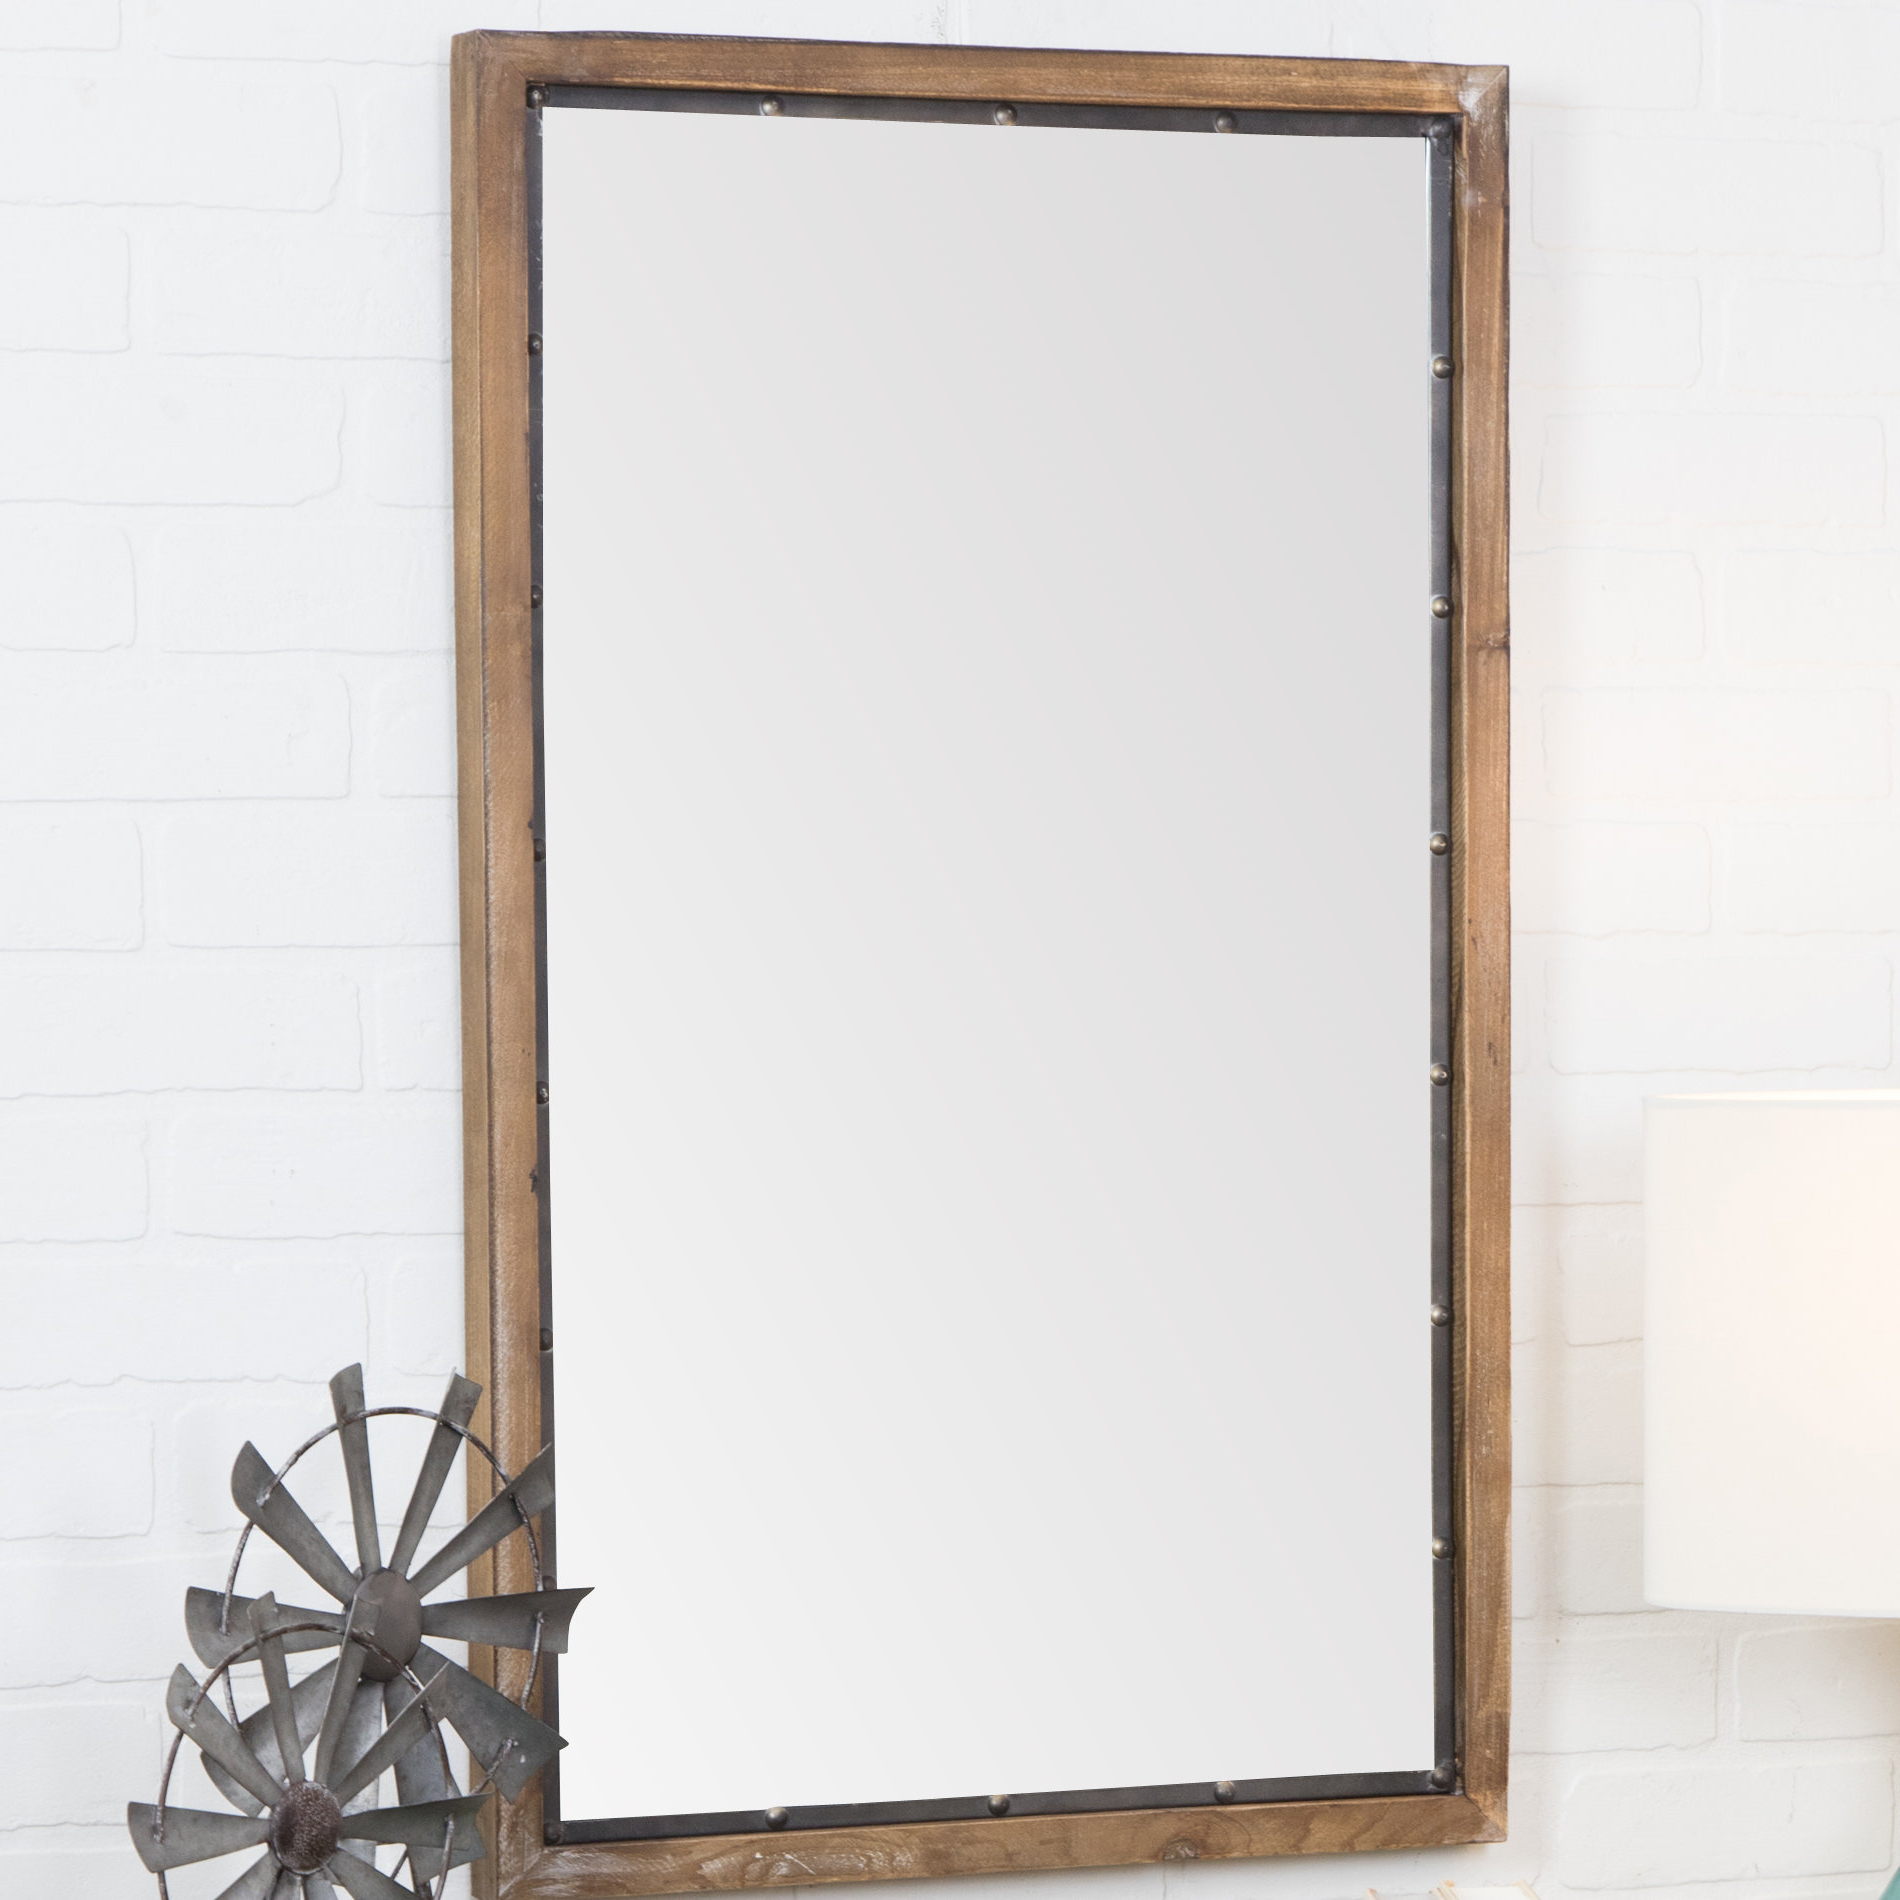 2020 Stamey Wall Mirrors Pertaining To Verduzco Rustic Wood Wall Mirror (View 11 of 20)